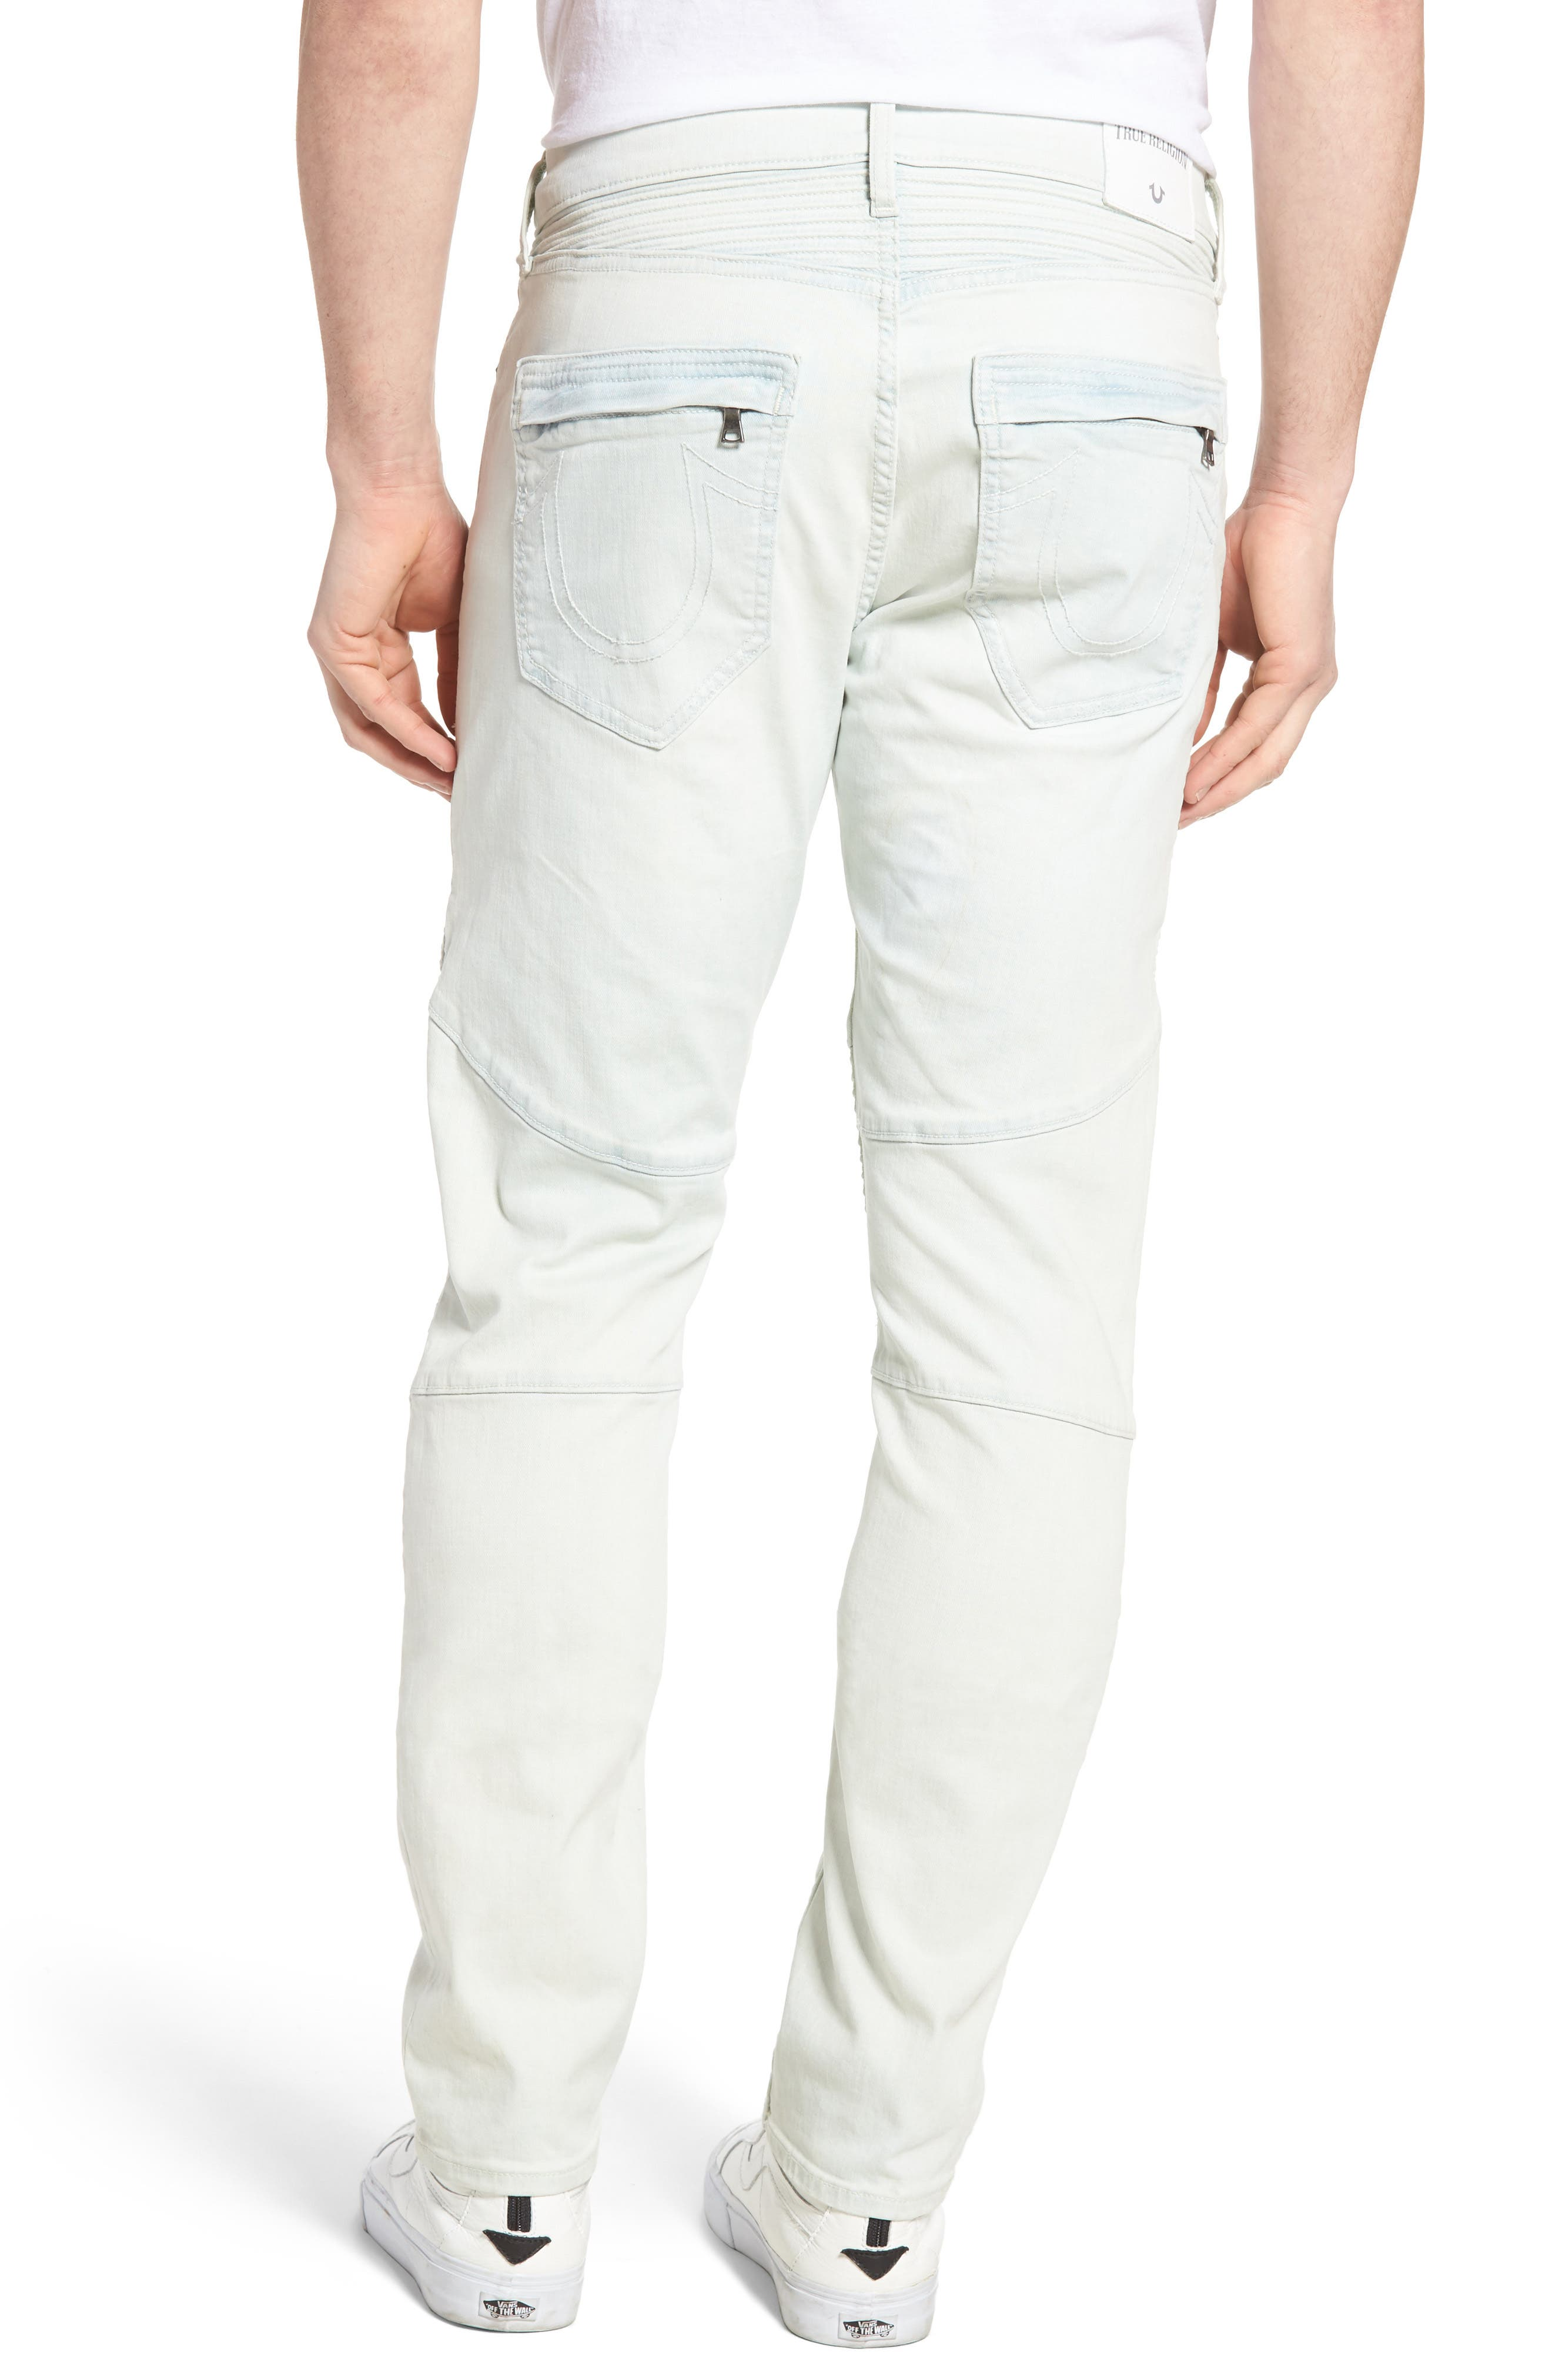 Rocco Skinny Fit Moto Jeans,                             Alternate thumbnail 2, color,                             Light Daze